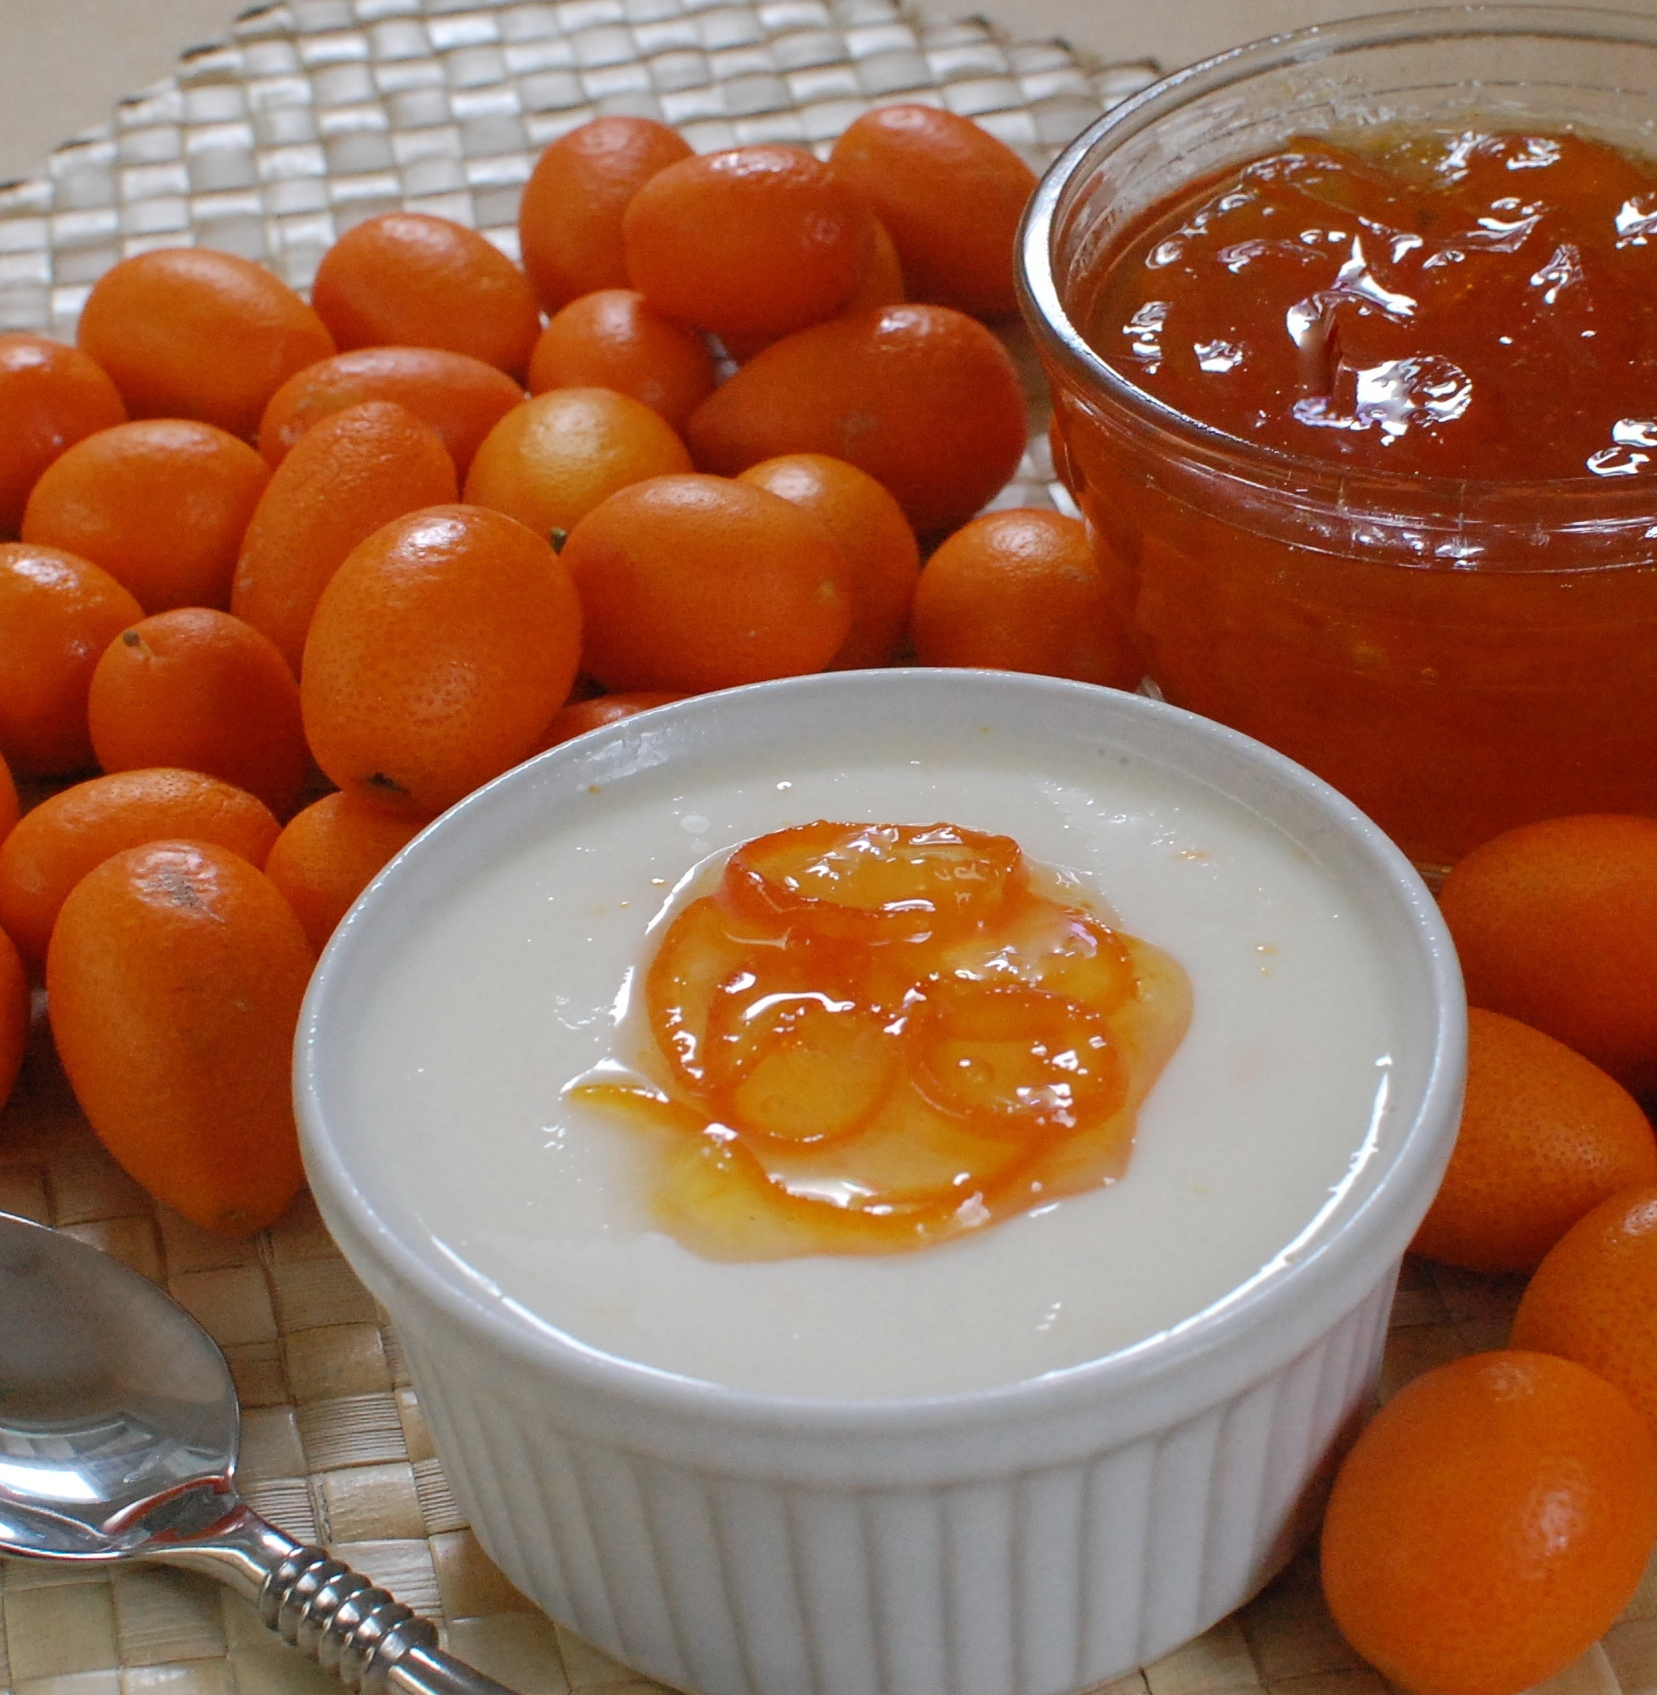 Buttermilk Panna Cotta with Kumquat Marmalade